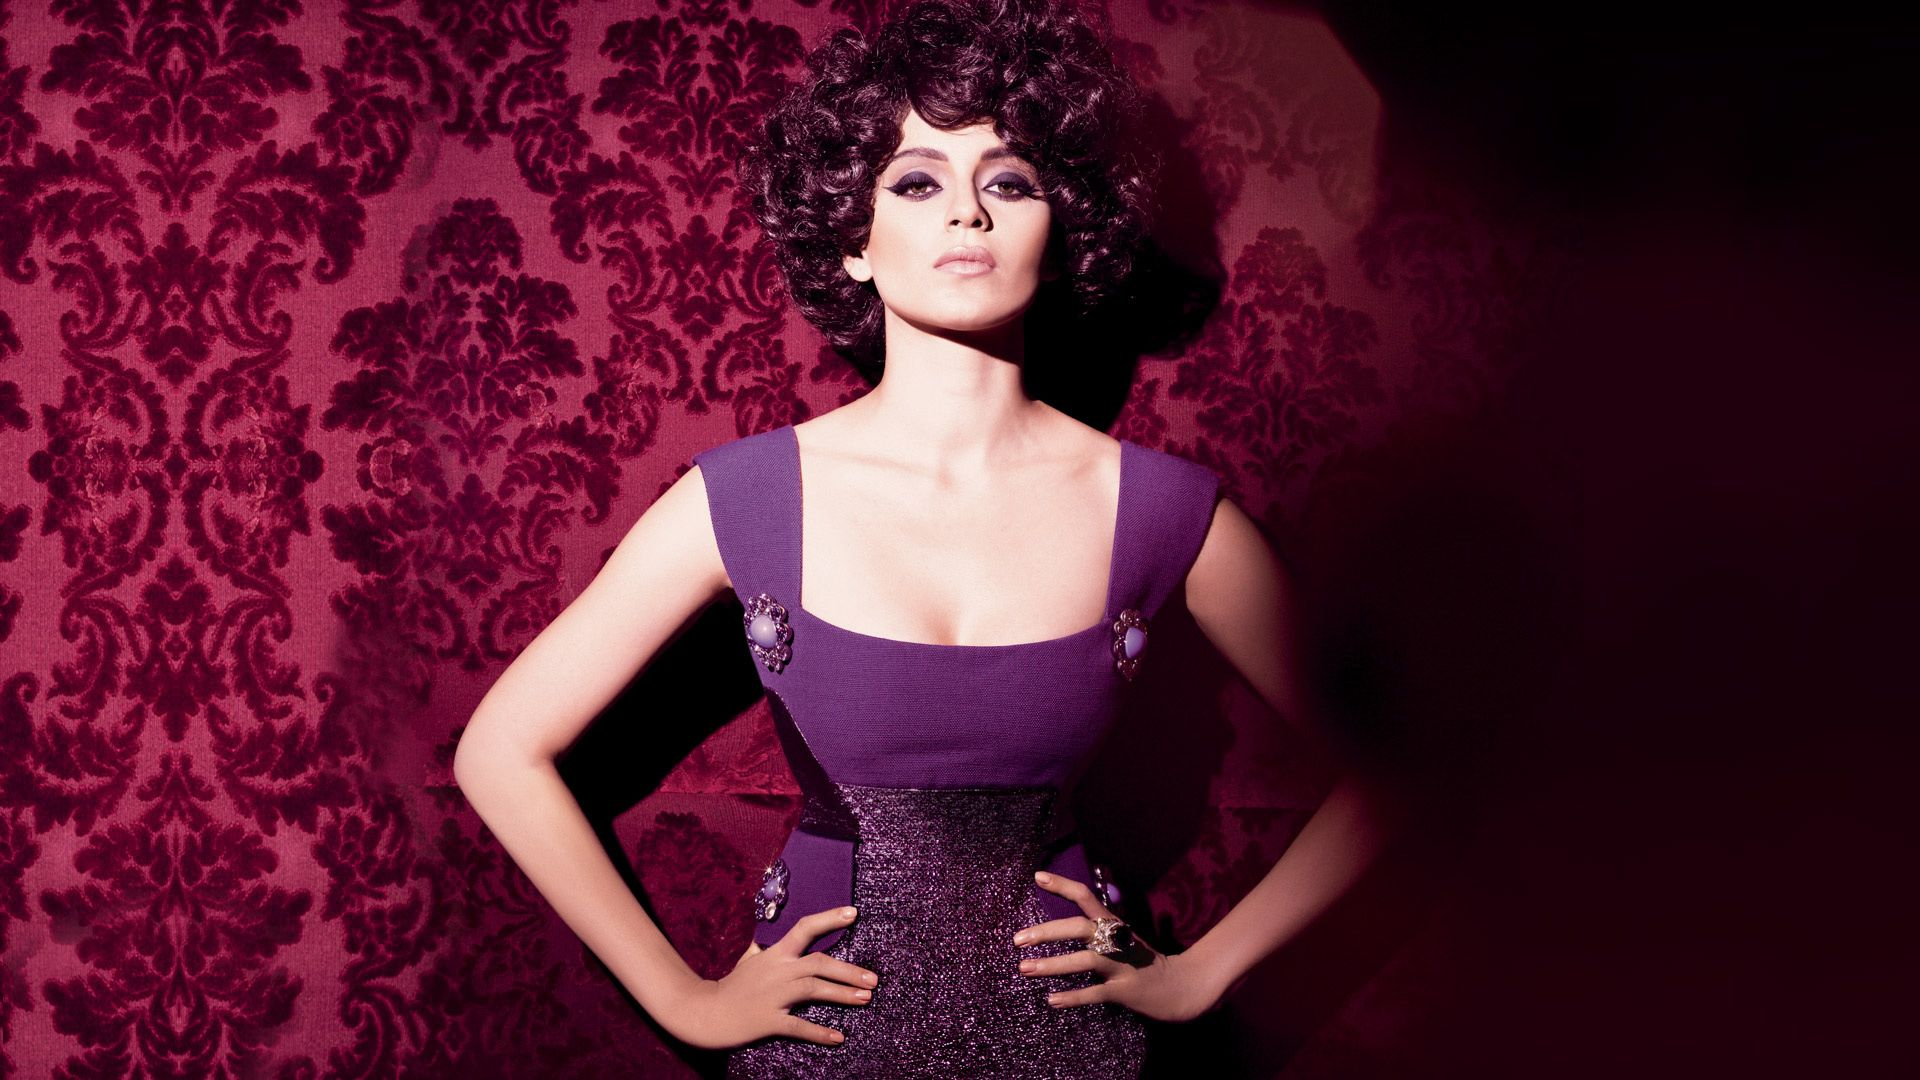 photoshoot indian actresses and actresses on pinterest actress kangana ranaut